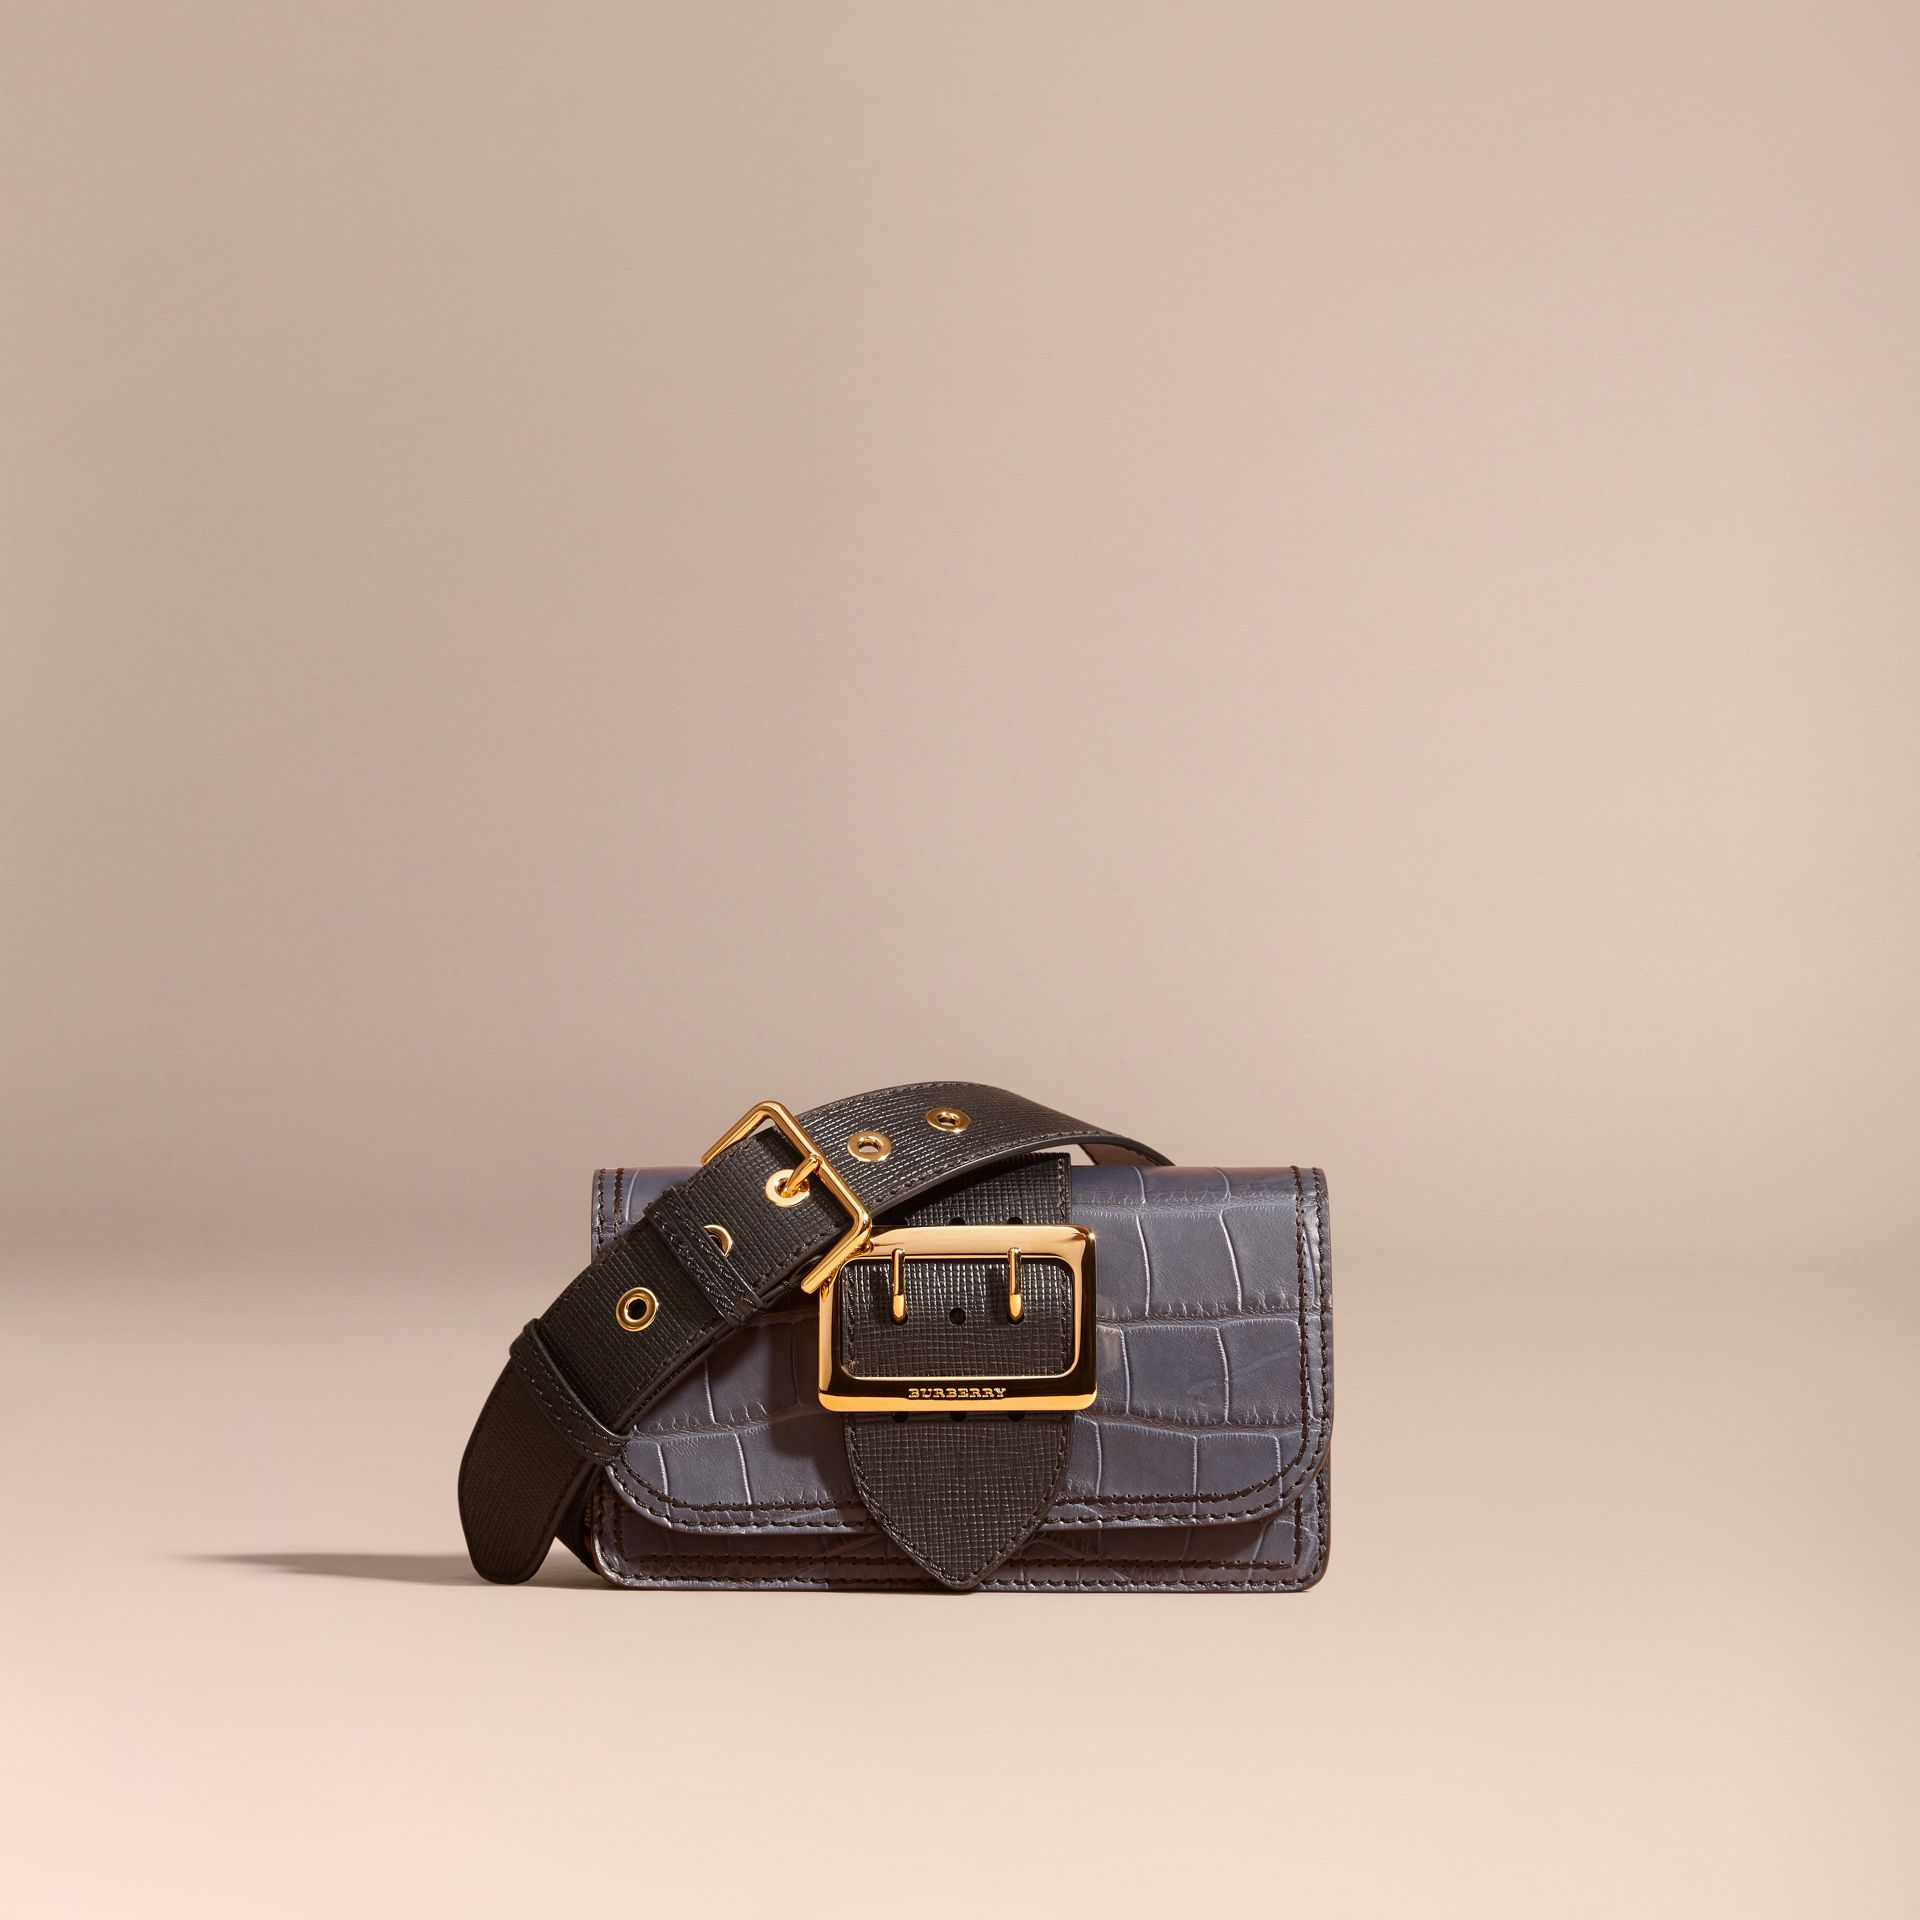 Navy / black The Small Buckle Bag in Alligator and Leather Navy / Black - gallery image 9